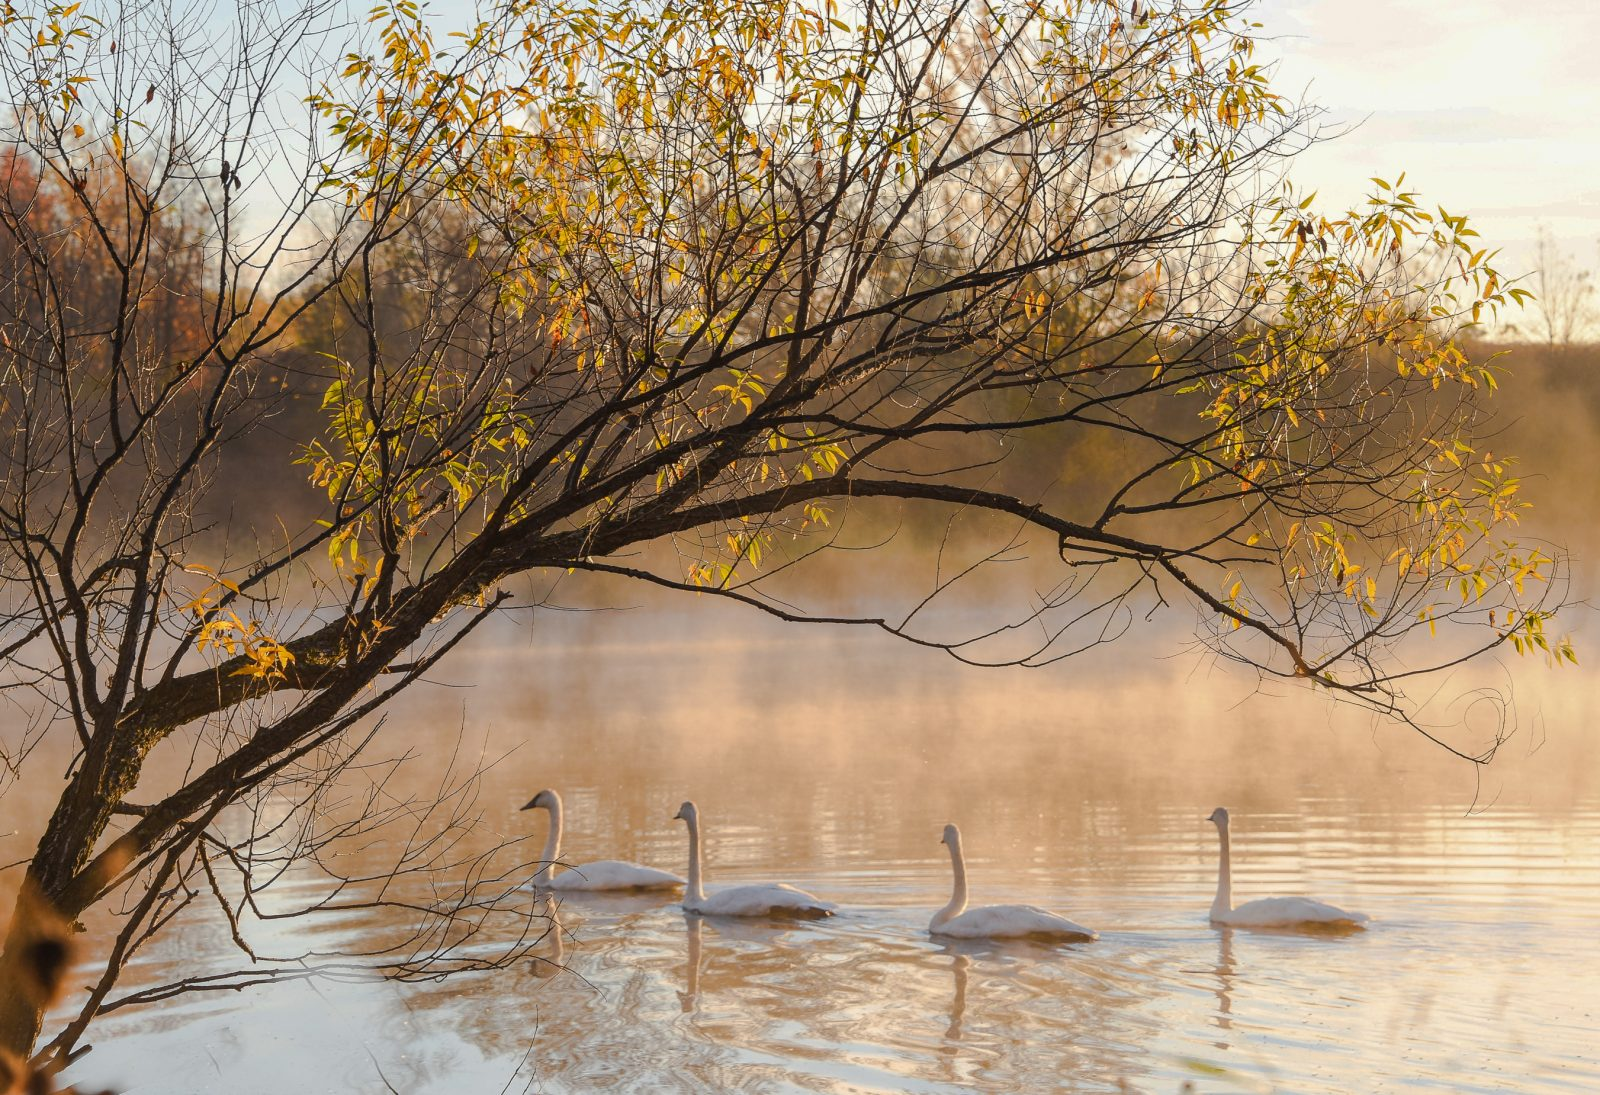 Autumn morning on the Pond